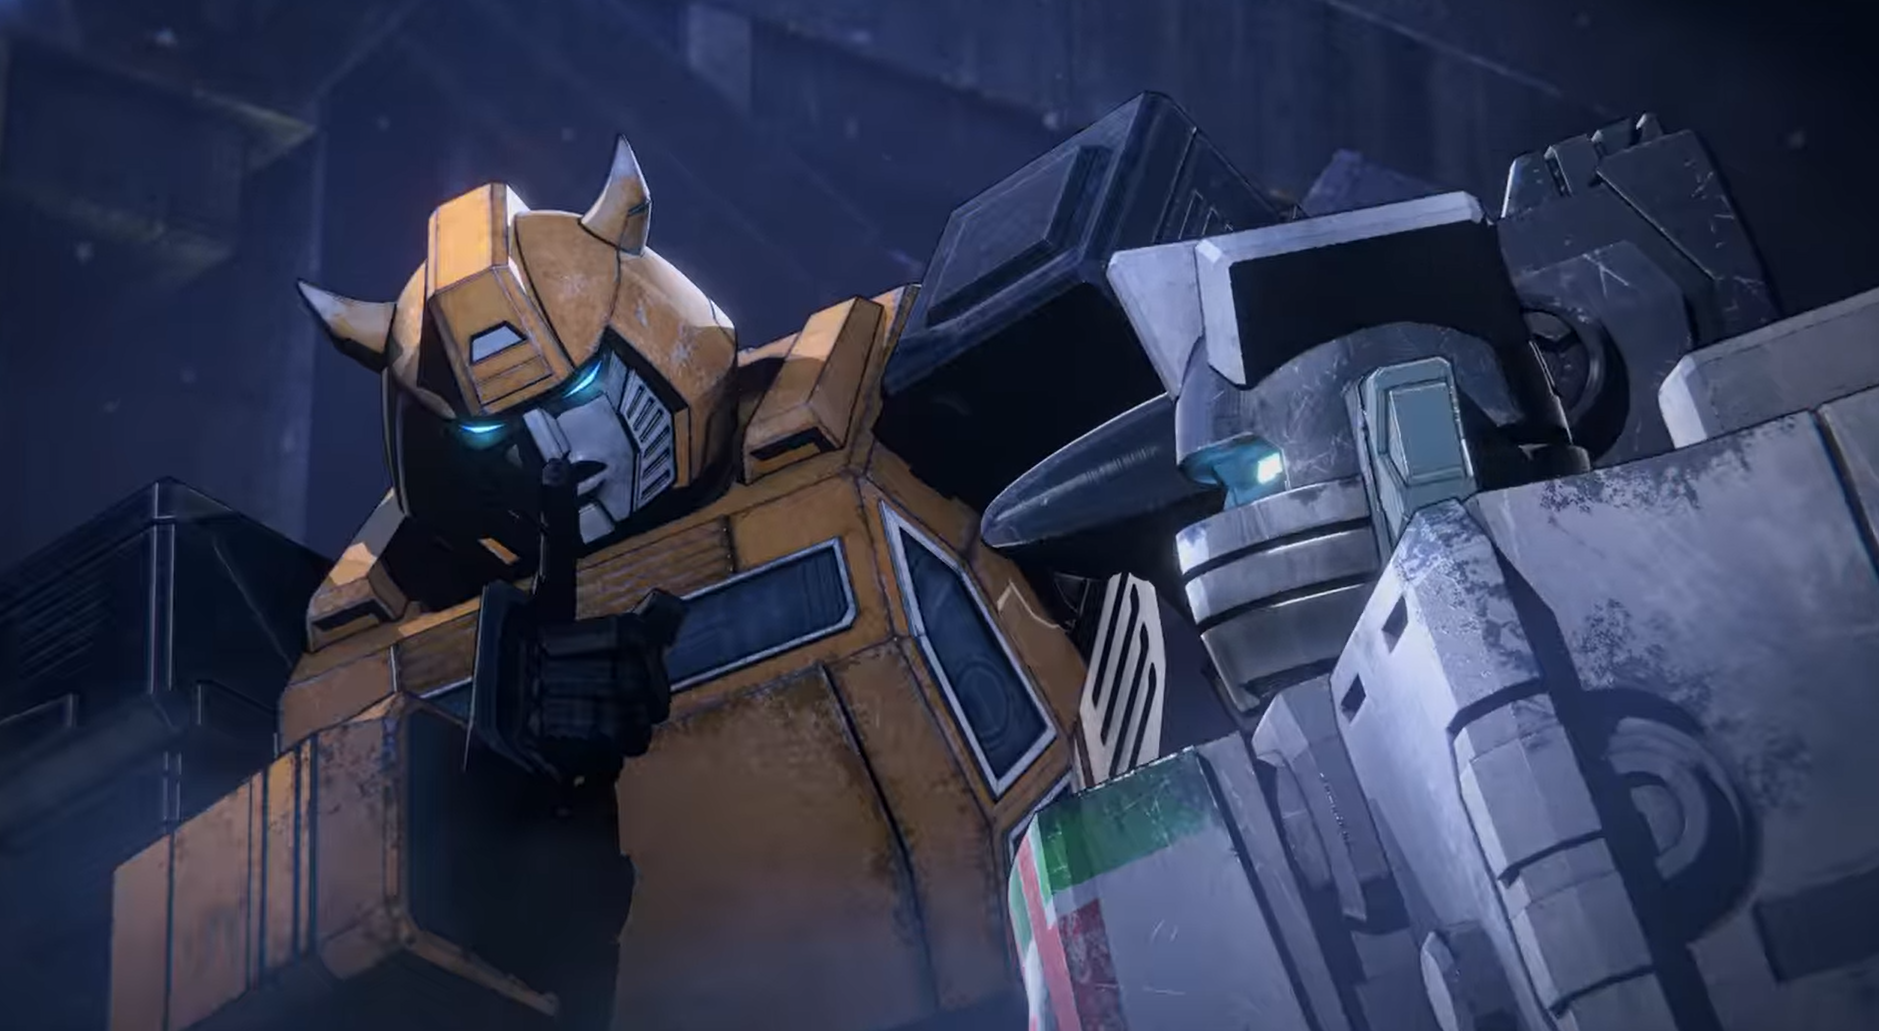 Bumblebee and Wheeljack from episode 1 of